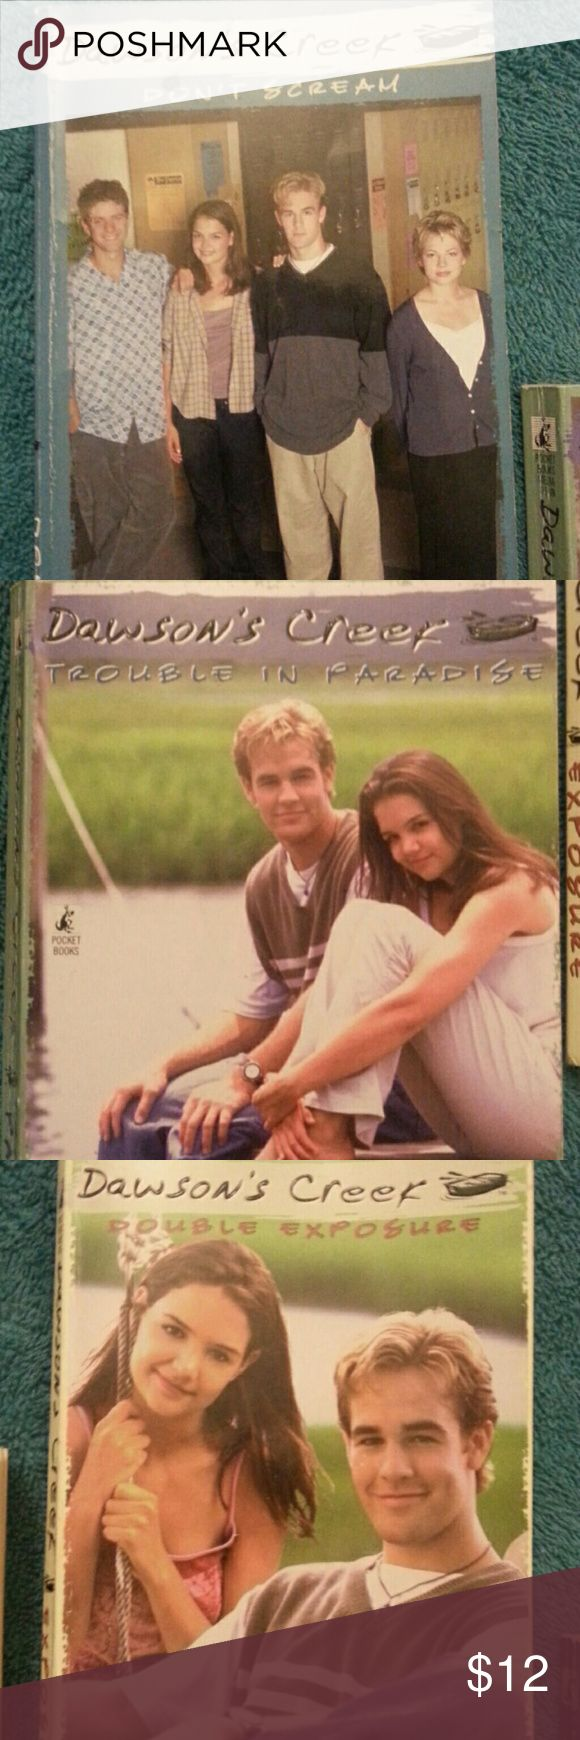 Dawson's Creek books Four Dawson' Creek books in great shape! Some corners have a little bit of normal wear to them. No writing or rips in them. Great gift for young adults!!!! Other